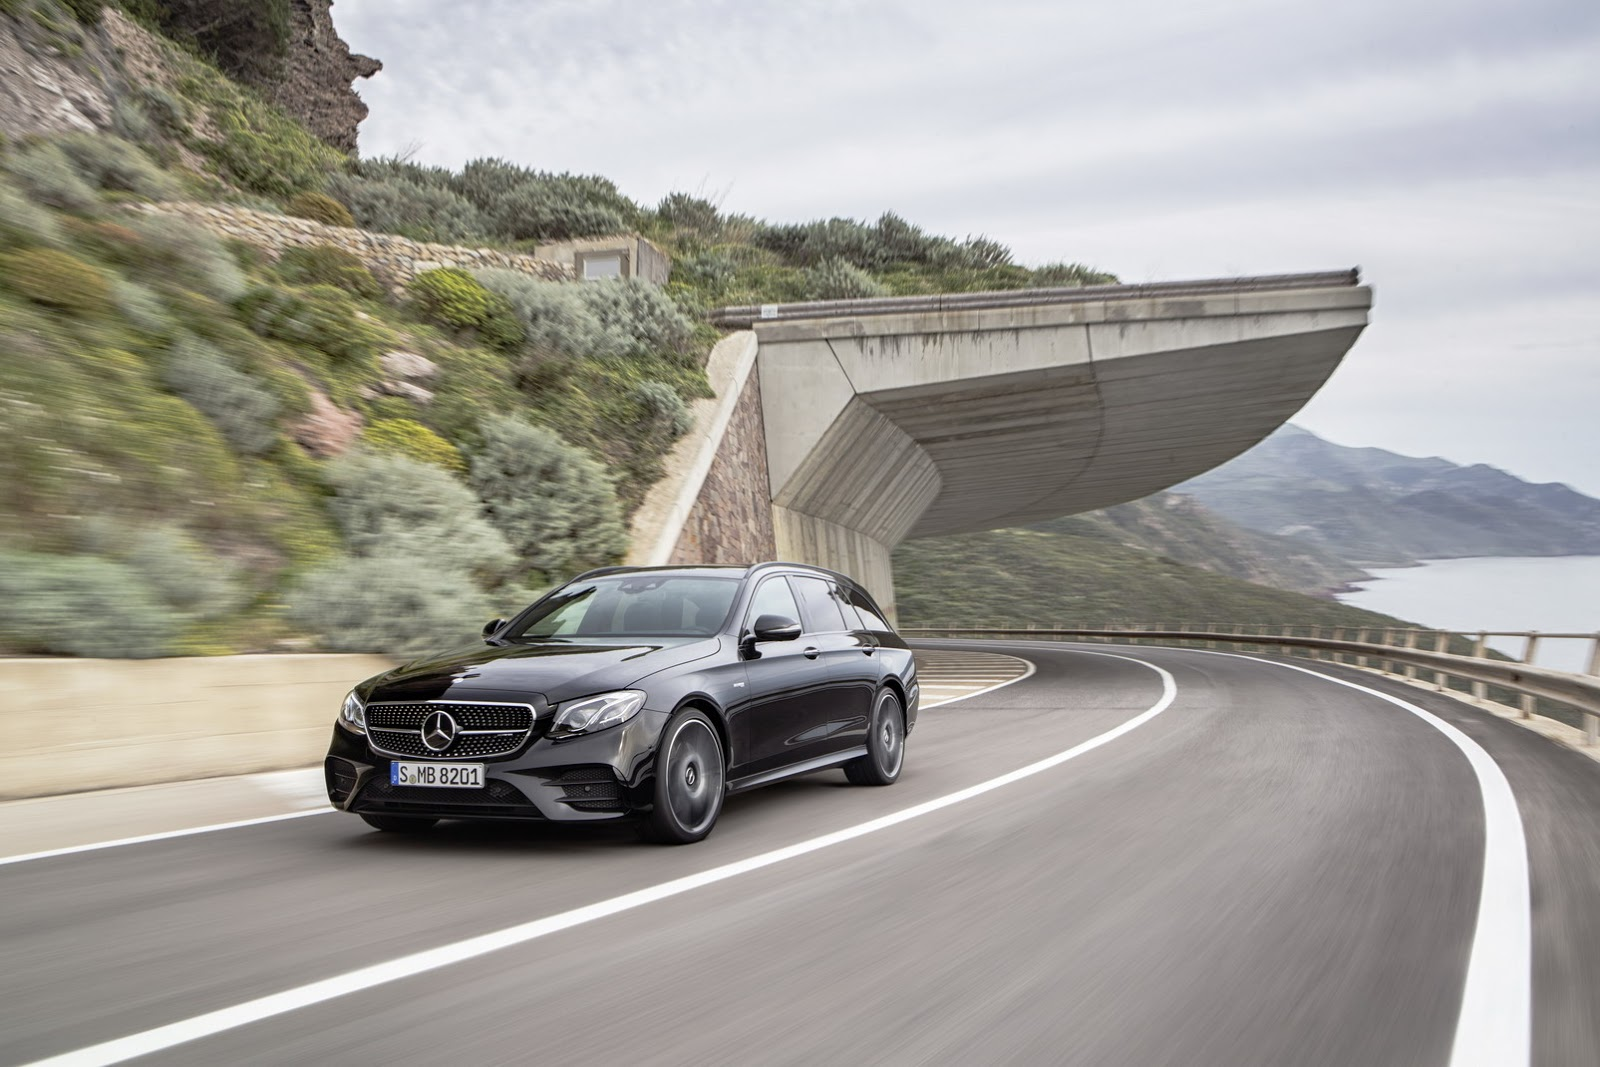 Mercedes-AMG E 43 4MATIC Estate front three quarters in motion